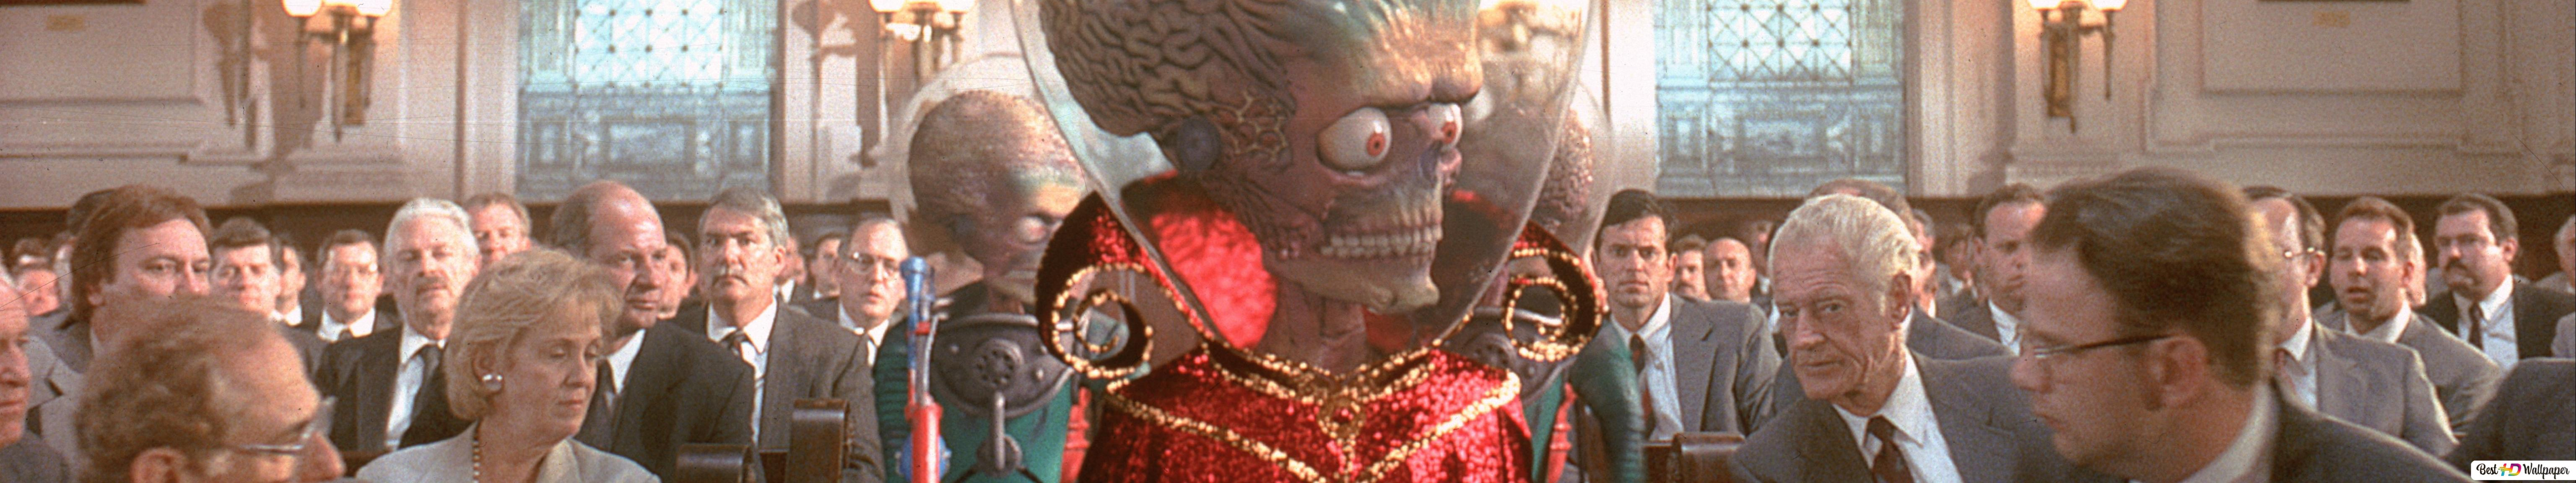 Descargar Fondo De Pantalla Mars Attacks Hd